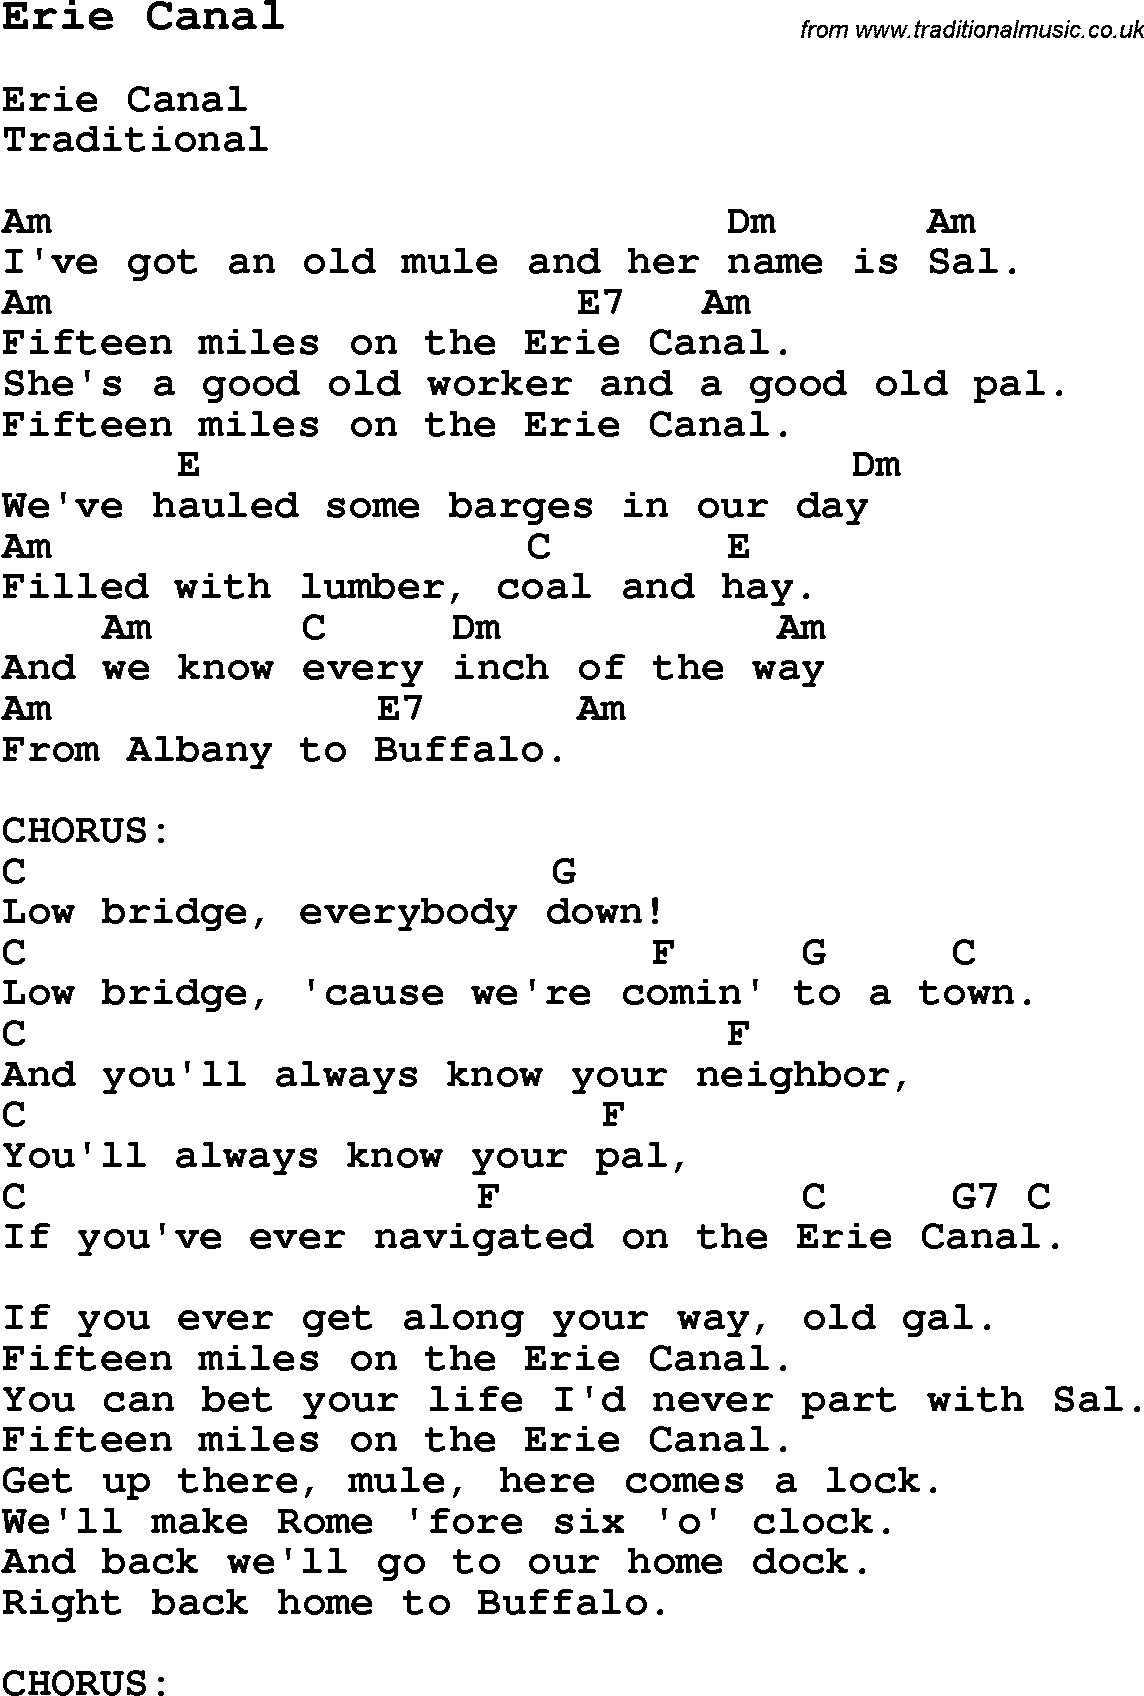 Bruce Springsteen – Erie Canal Lyrics | Genius Lyrics